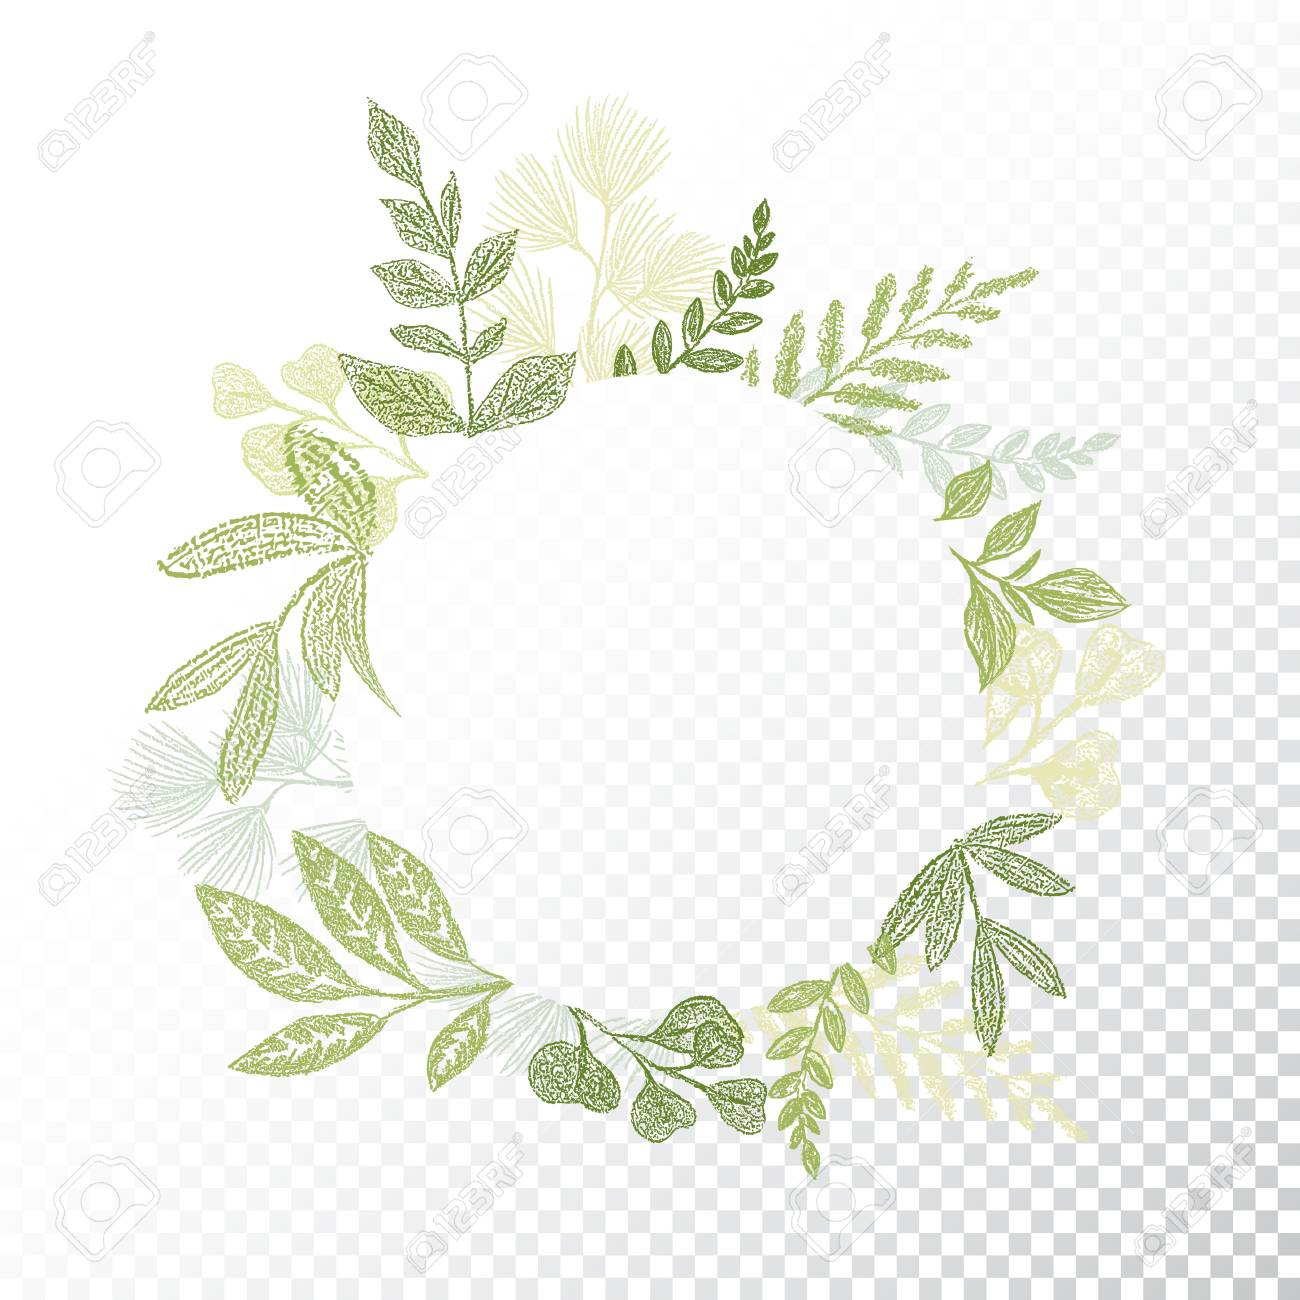 Transparent Background Circle Floral Frame With Hand Drawn Branches And Leaves Decoration Round Green Botanical Border For